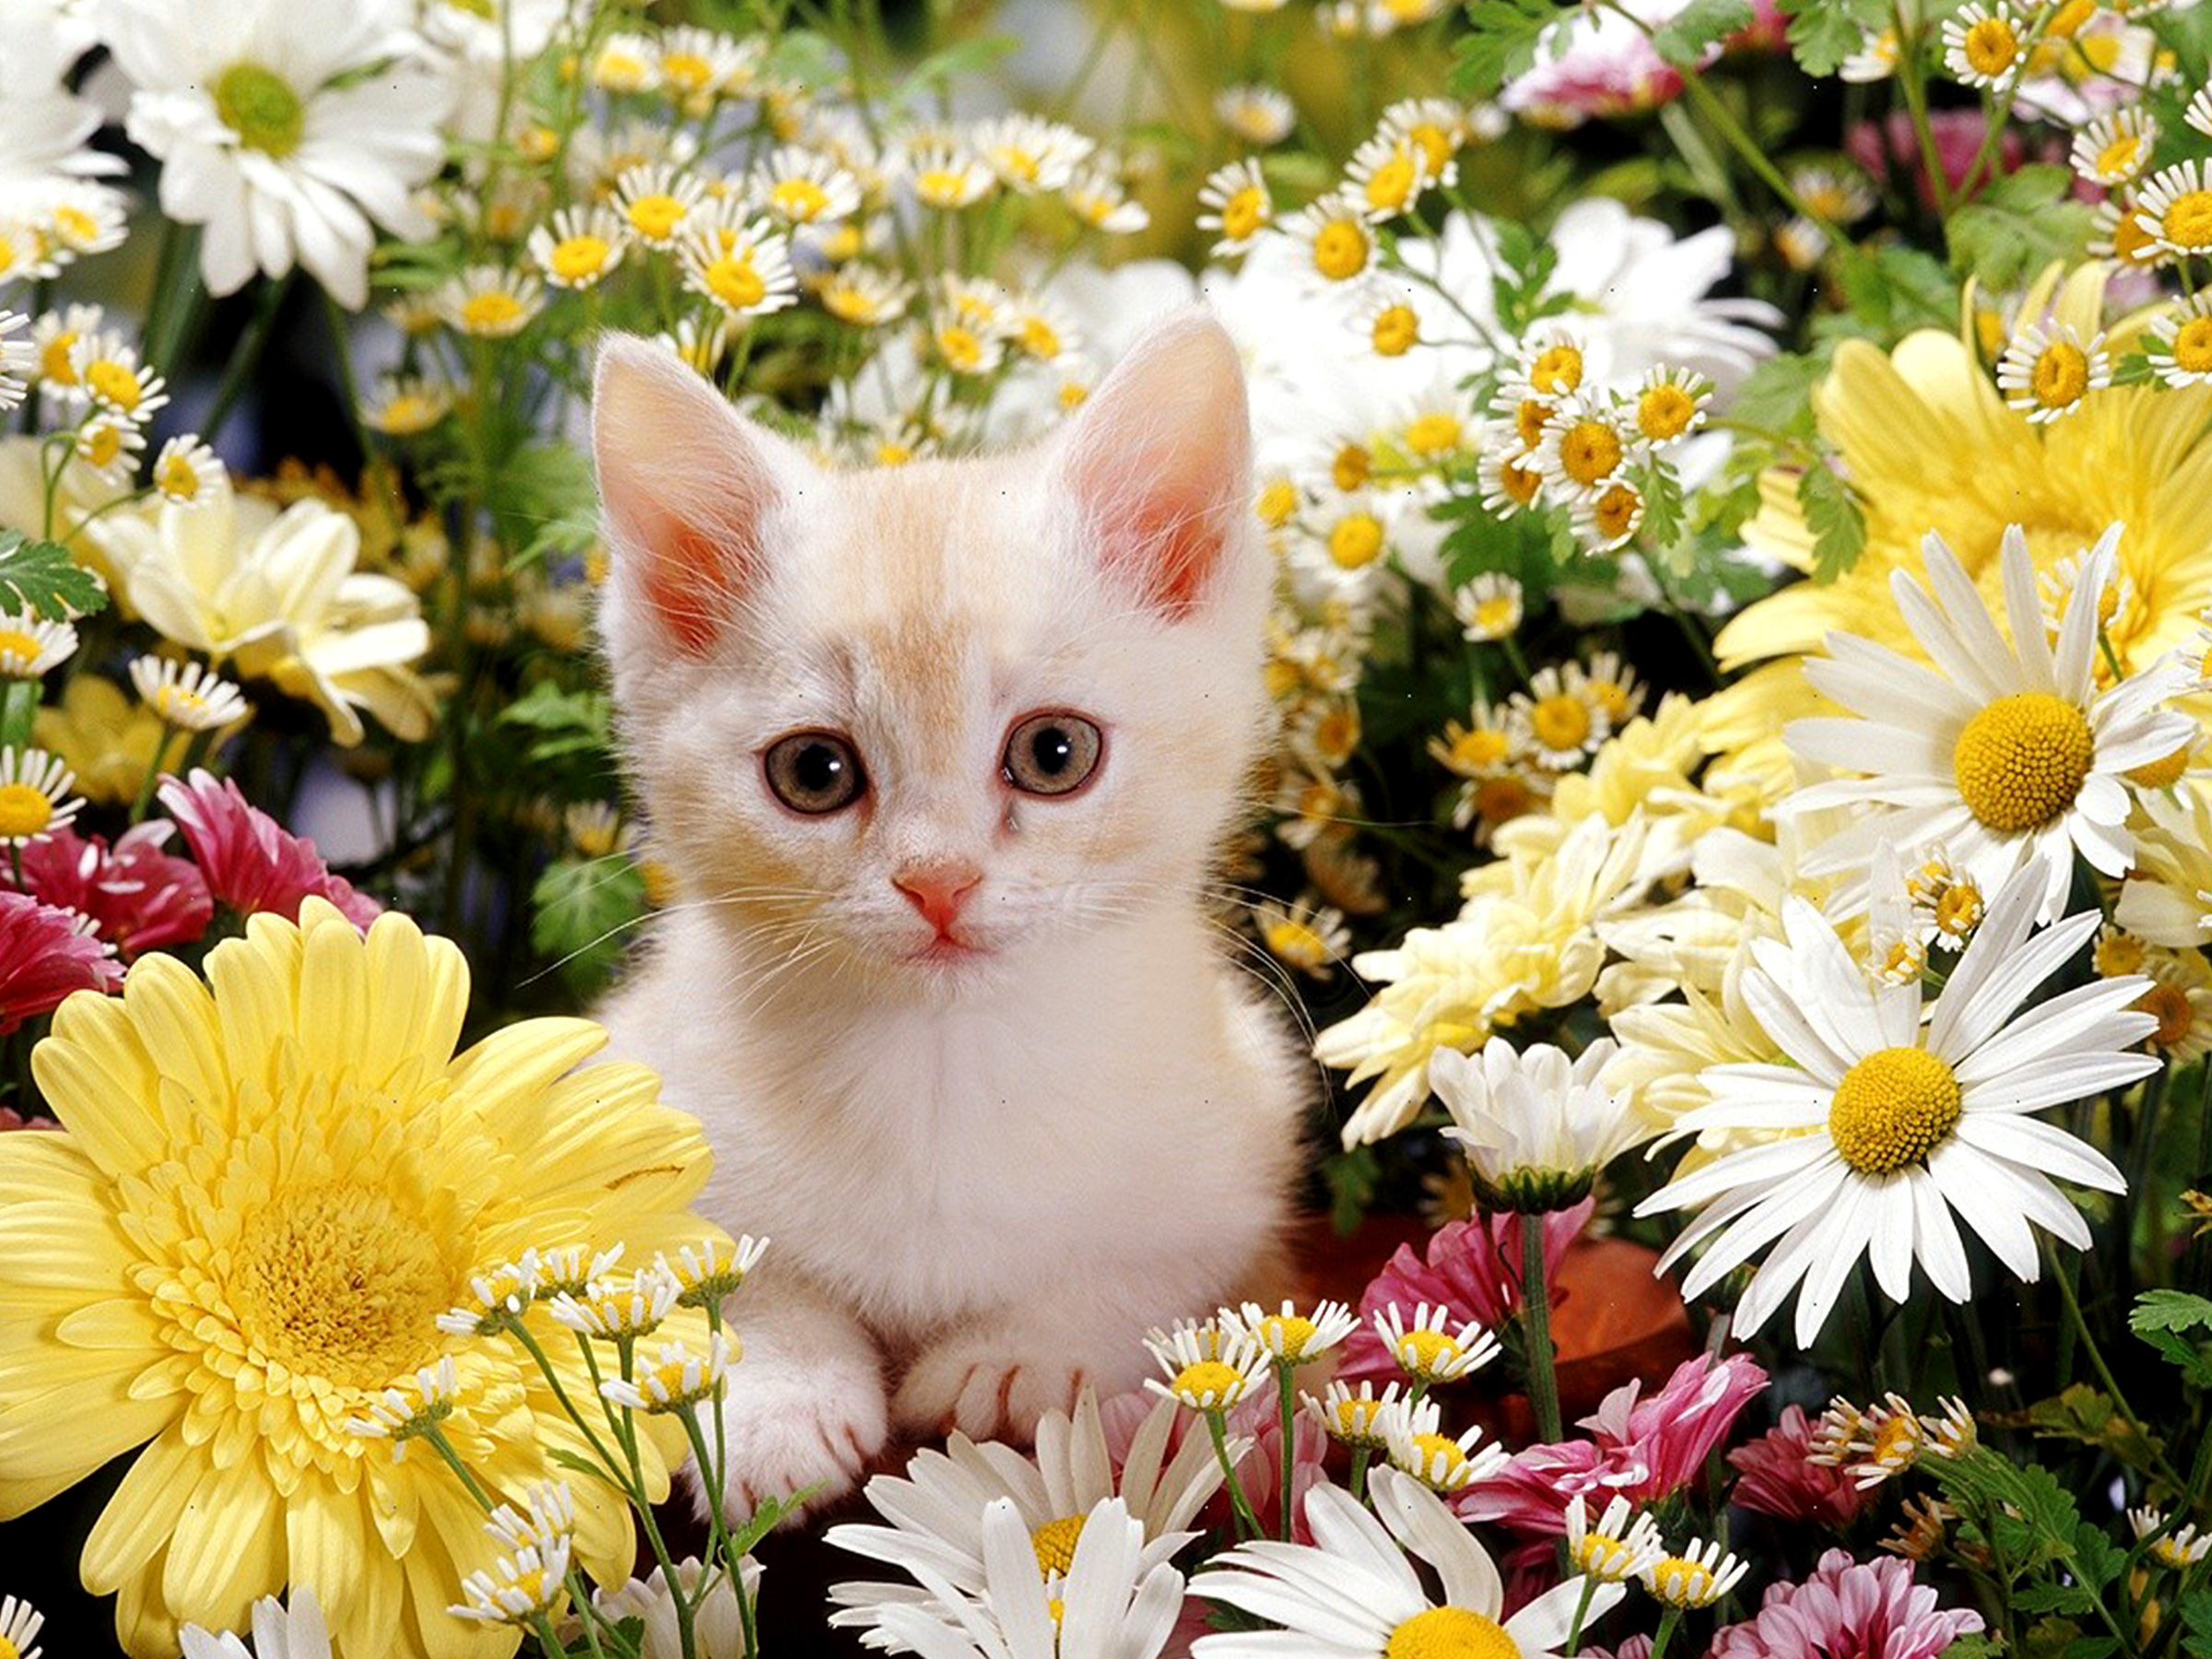 Cute Puppies Full Hd Wallpapers Cute Kitten Desktop Wallpaper 60 Images